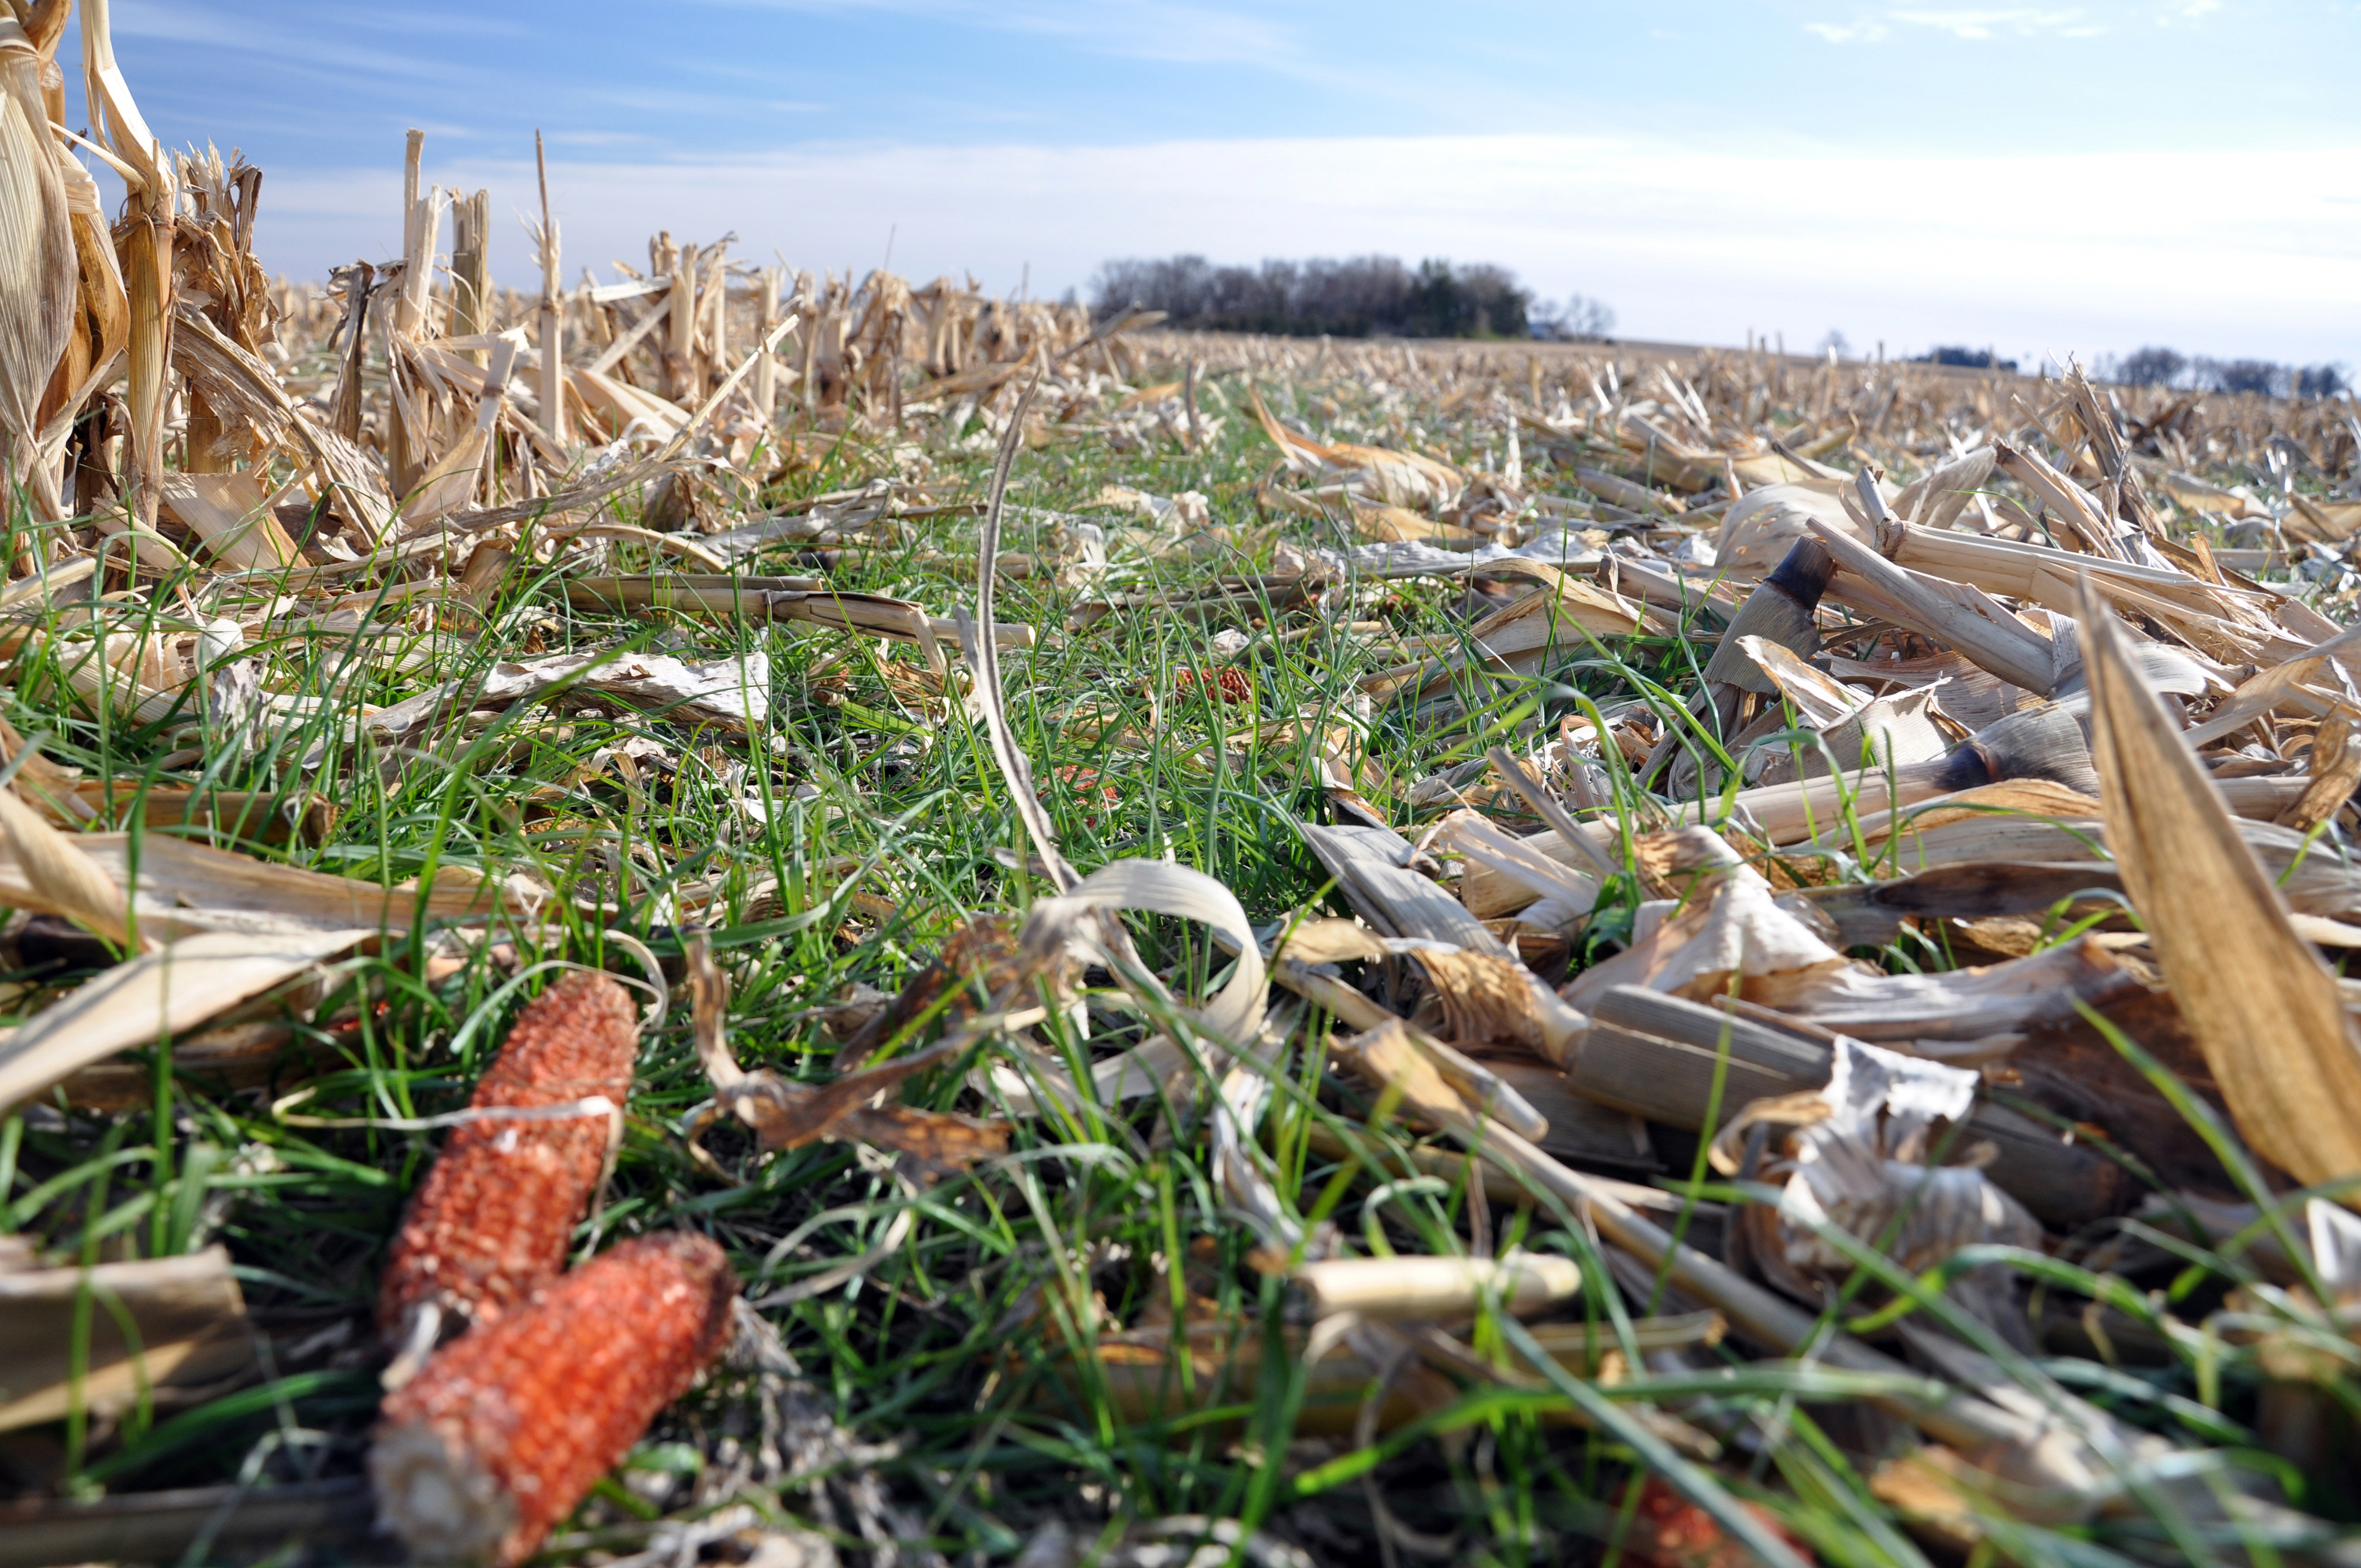 East Pottawattamie County farmer Pete Hobsom uses annual ryegrass as cover following corn harvest.